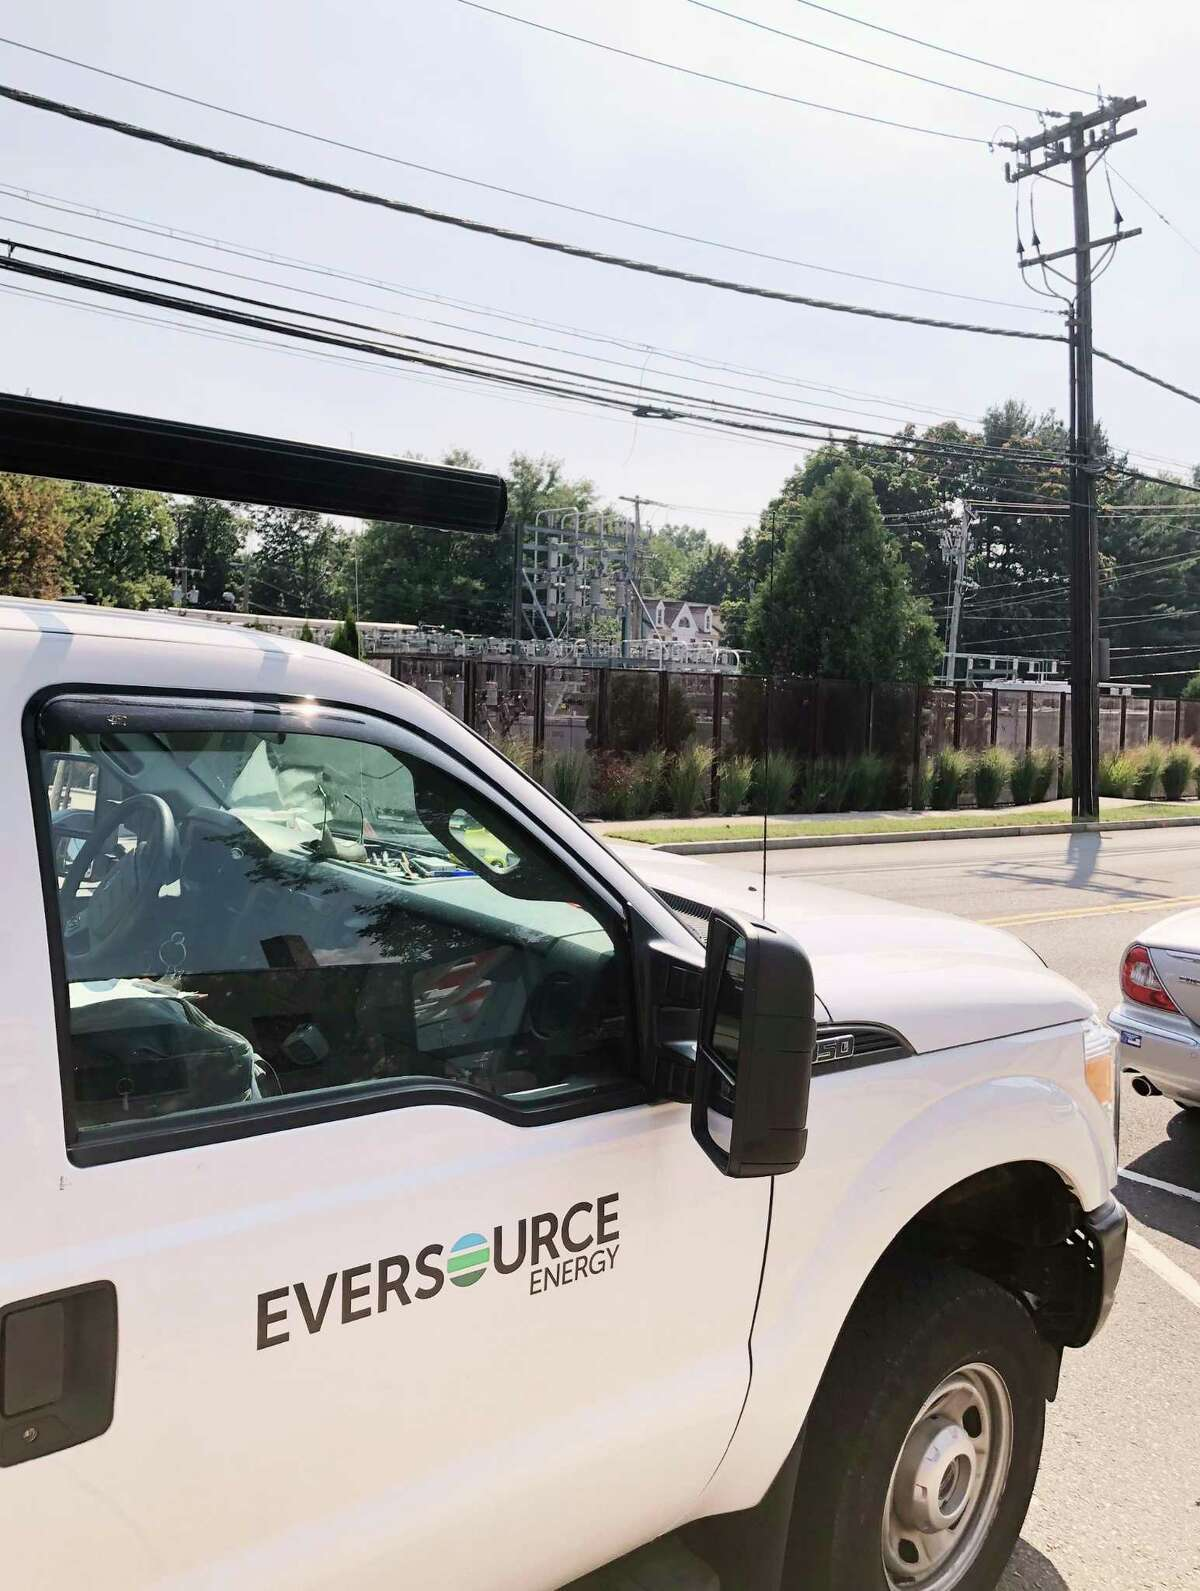 File photo of an Eversource Energy truck.